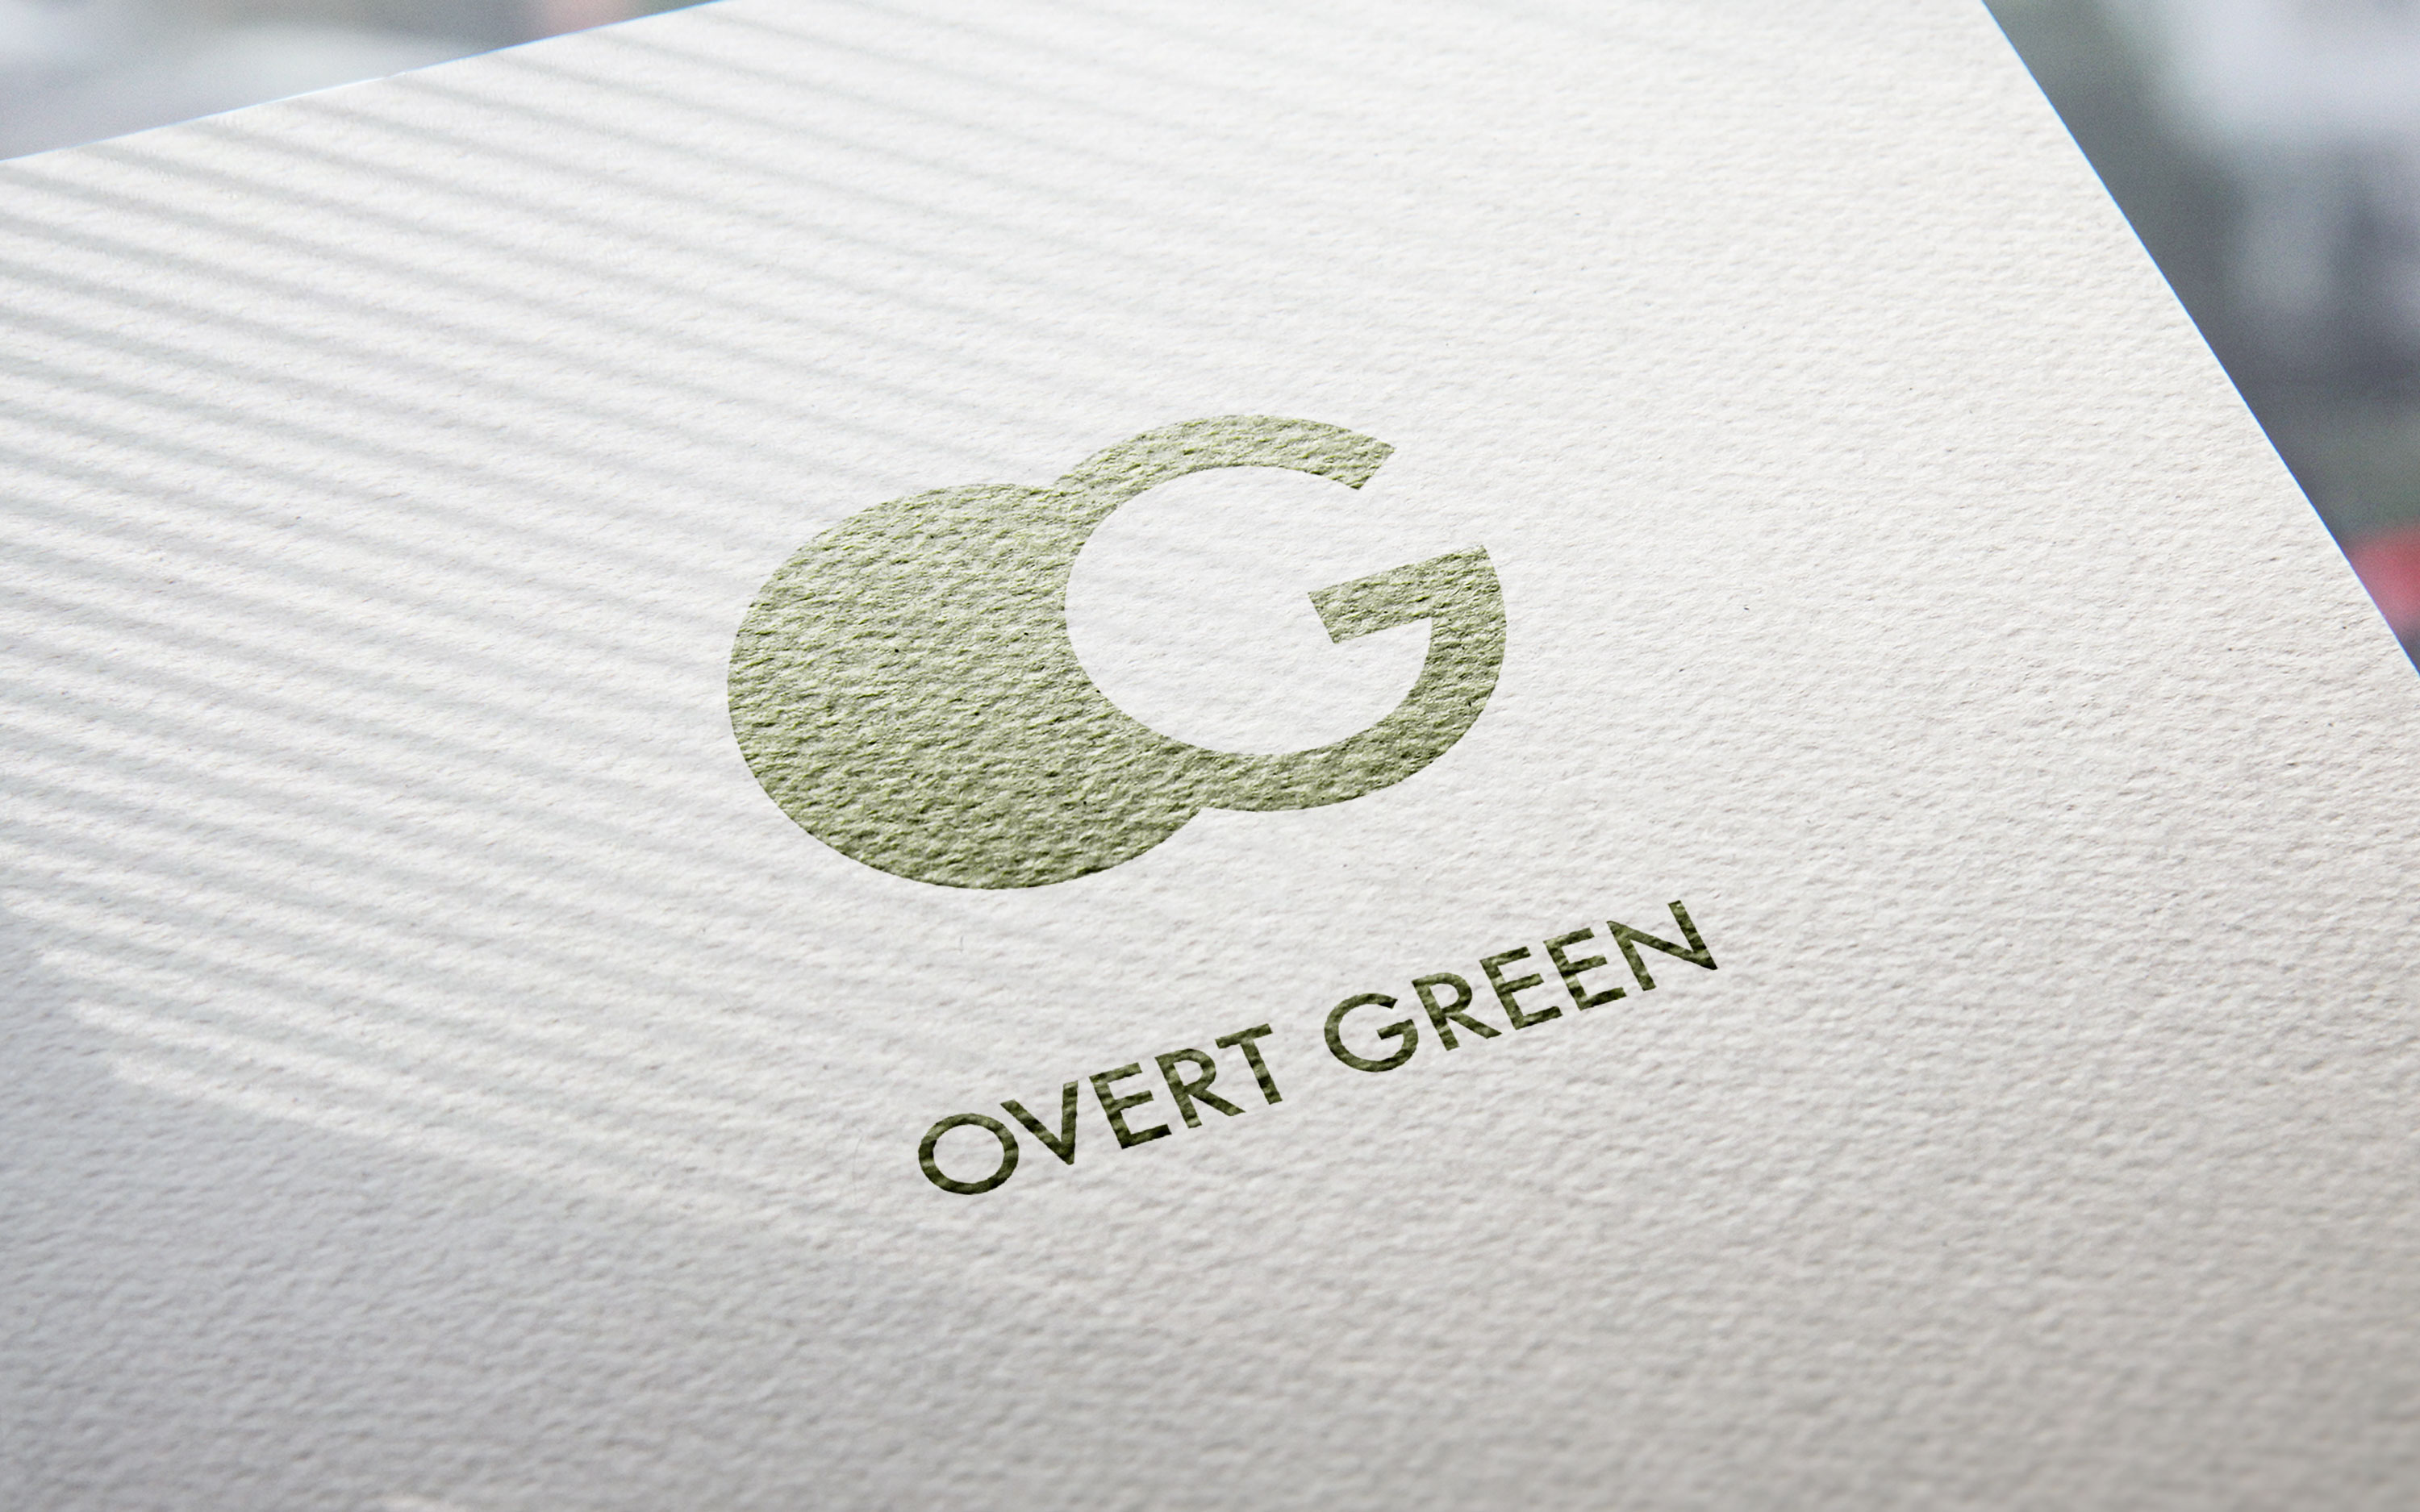 Overt Green. Logo for a Dubai based recycling company